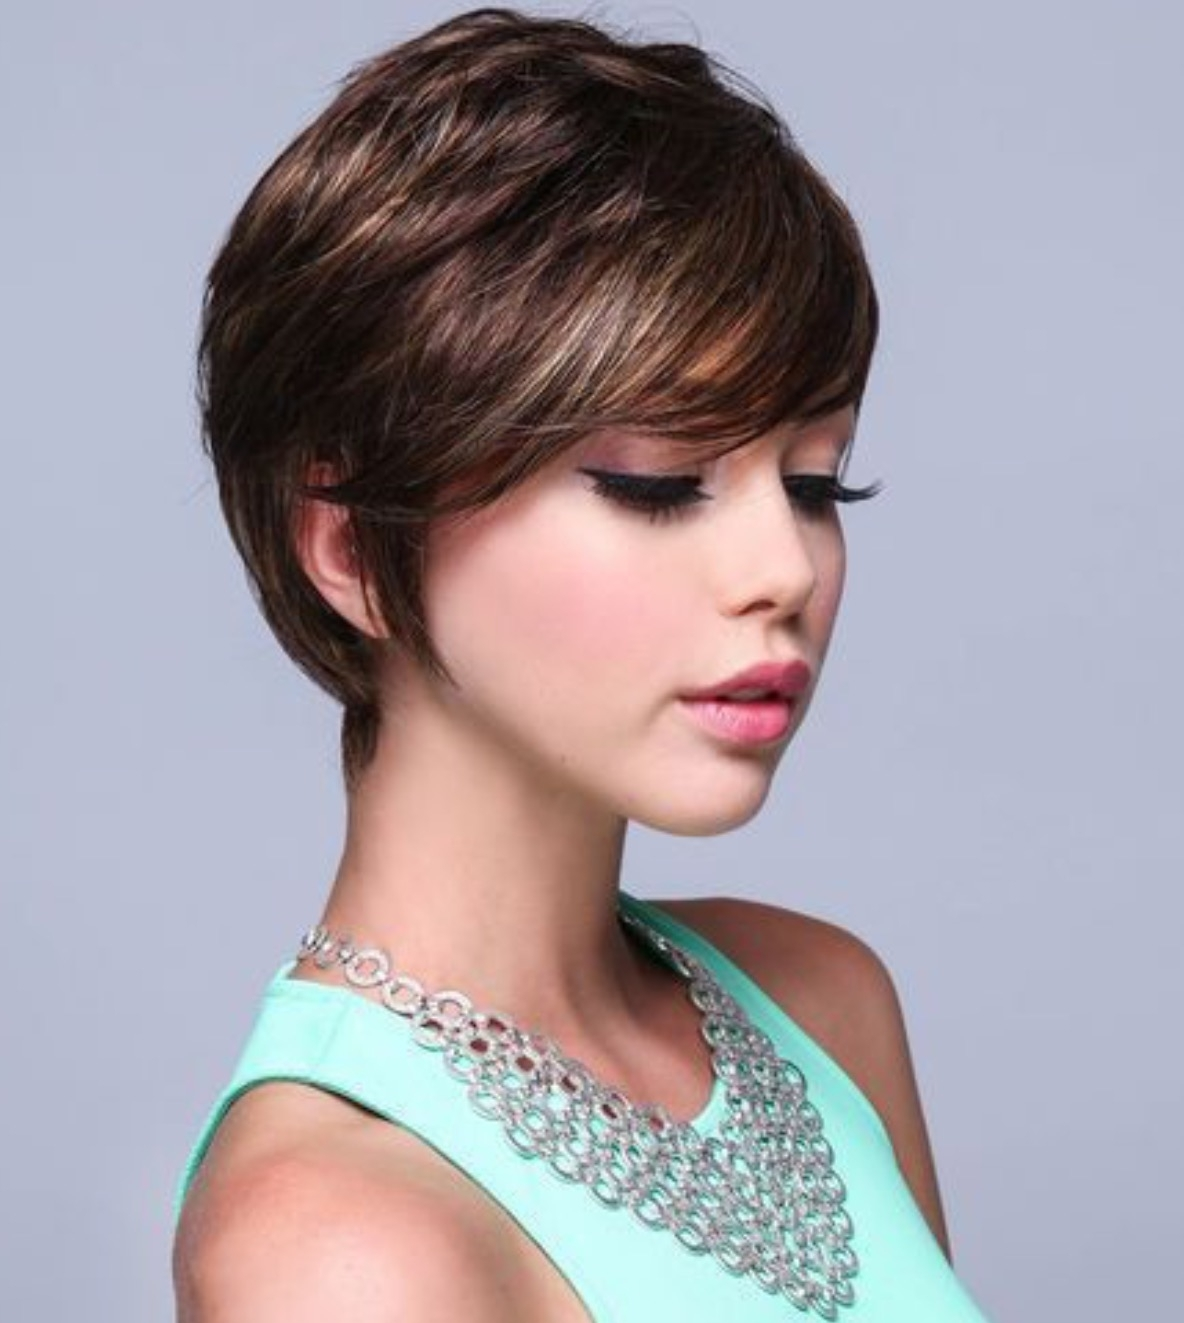 Very Cute Long Pixie Cut   Things That Catch My Eye   Pinterest For Most Up To Date Pixie Hairstyles With Short Bangs (View 12 of 15)